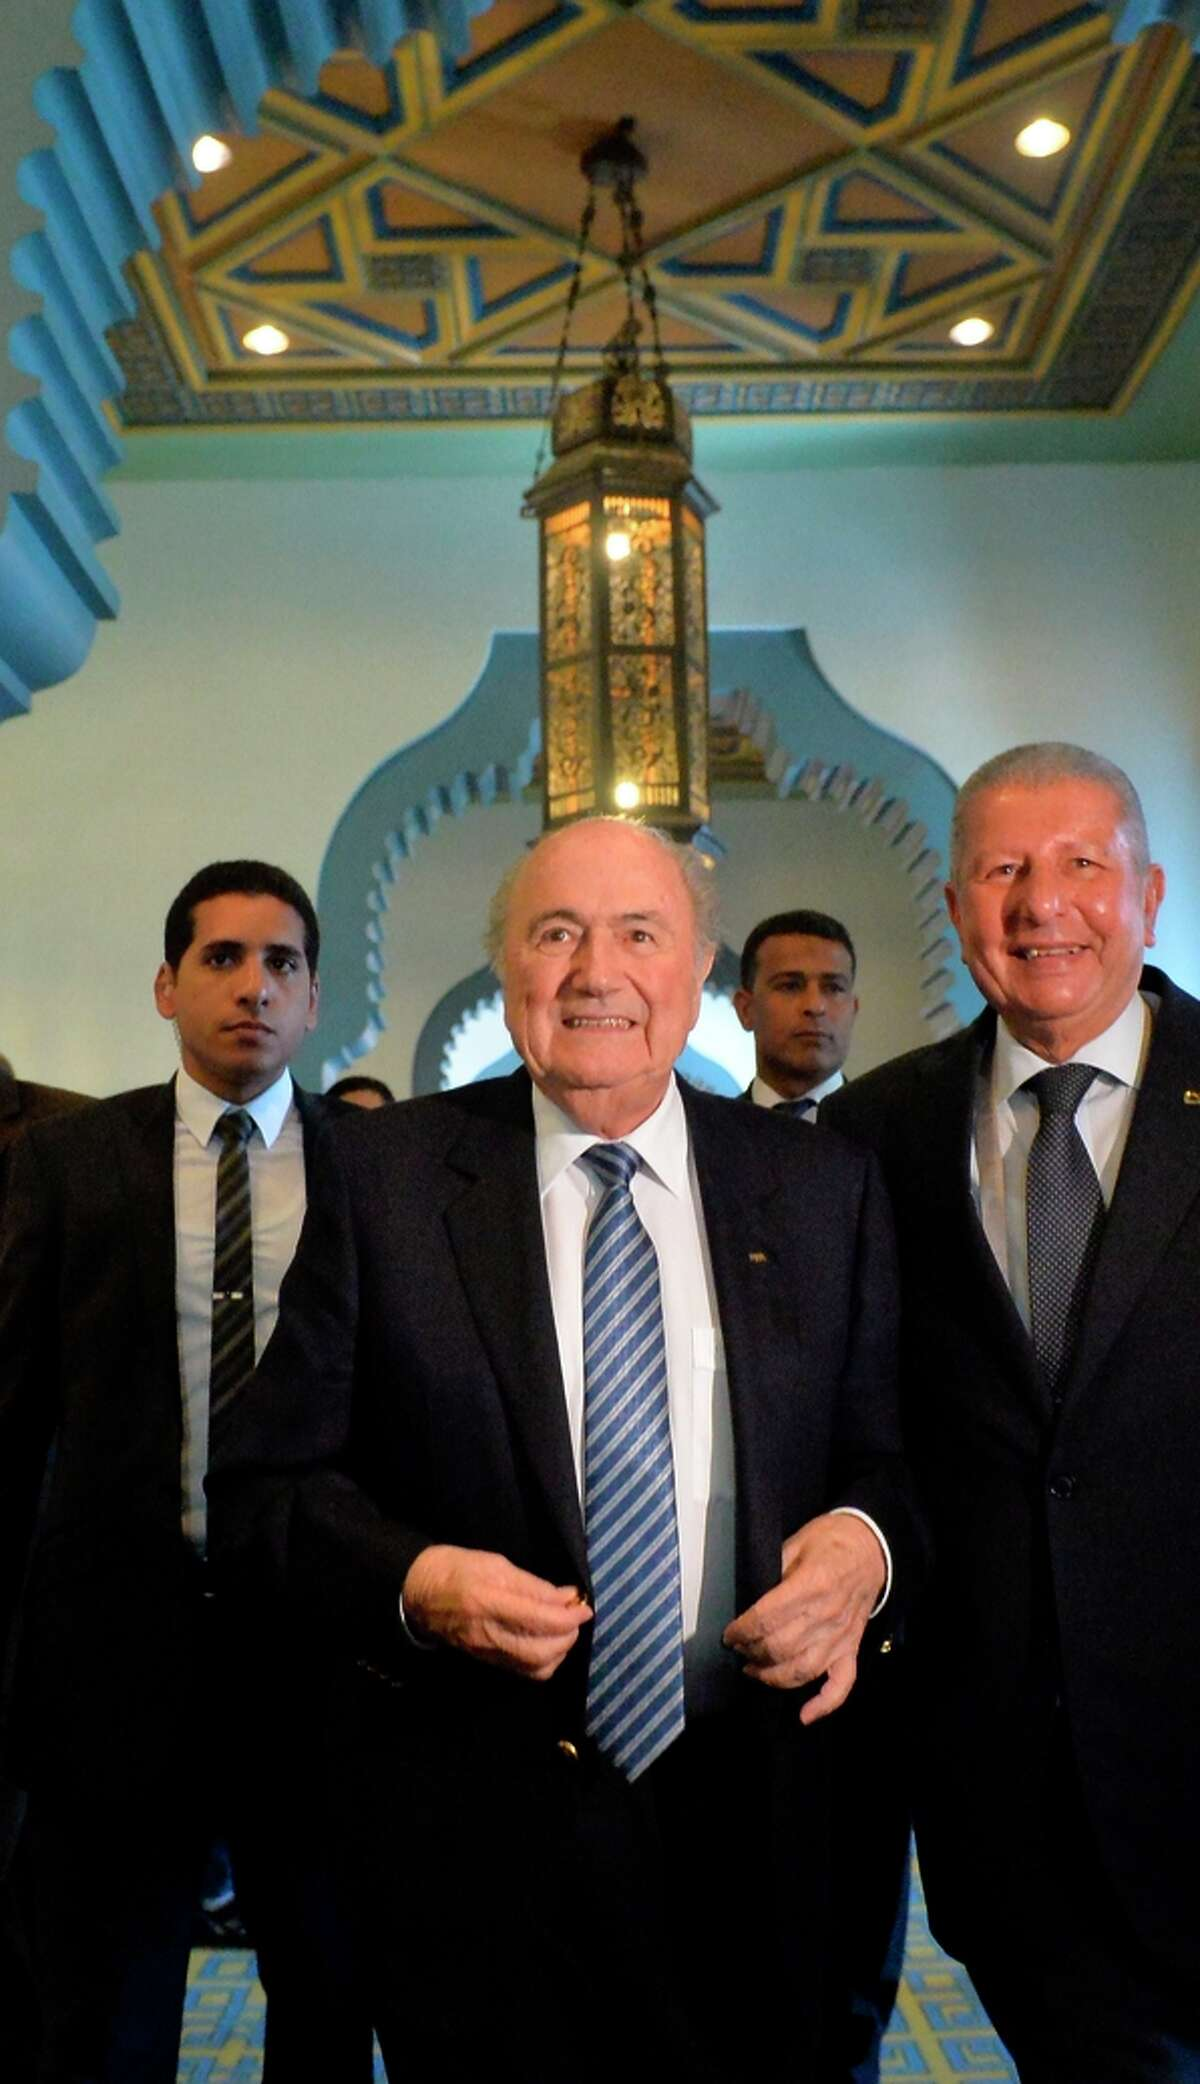 Sepp Blatter (center) was re-elected FIFA president in 2002, 2007 and 2011.